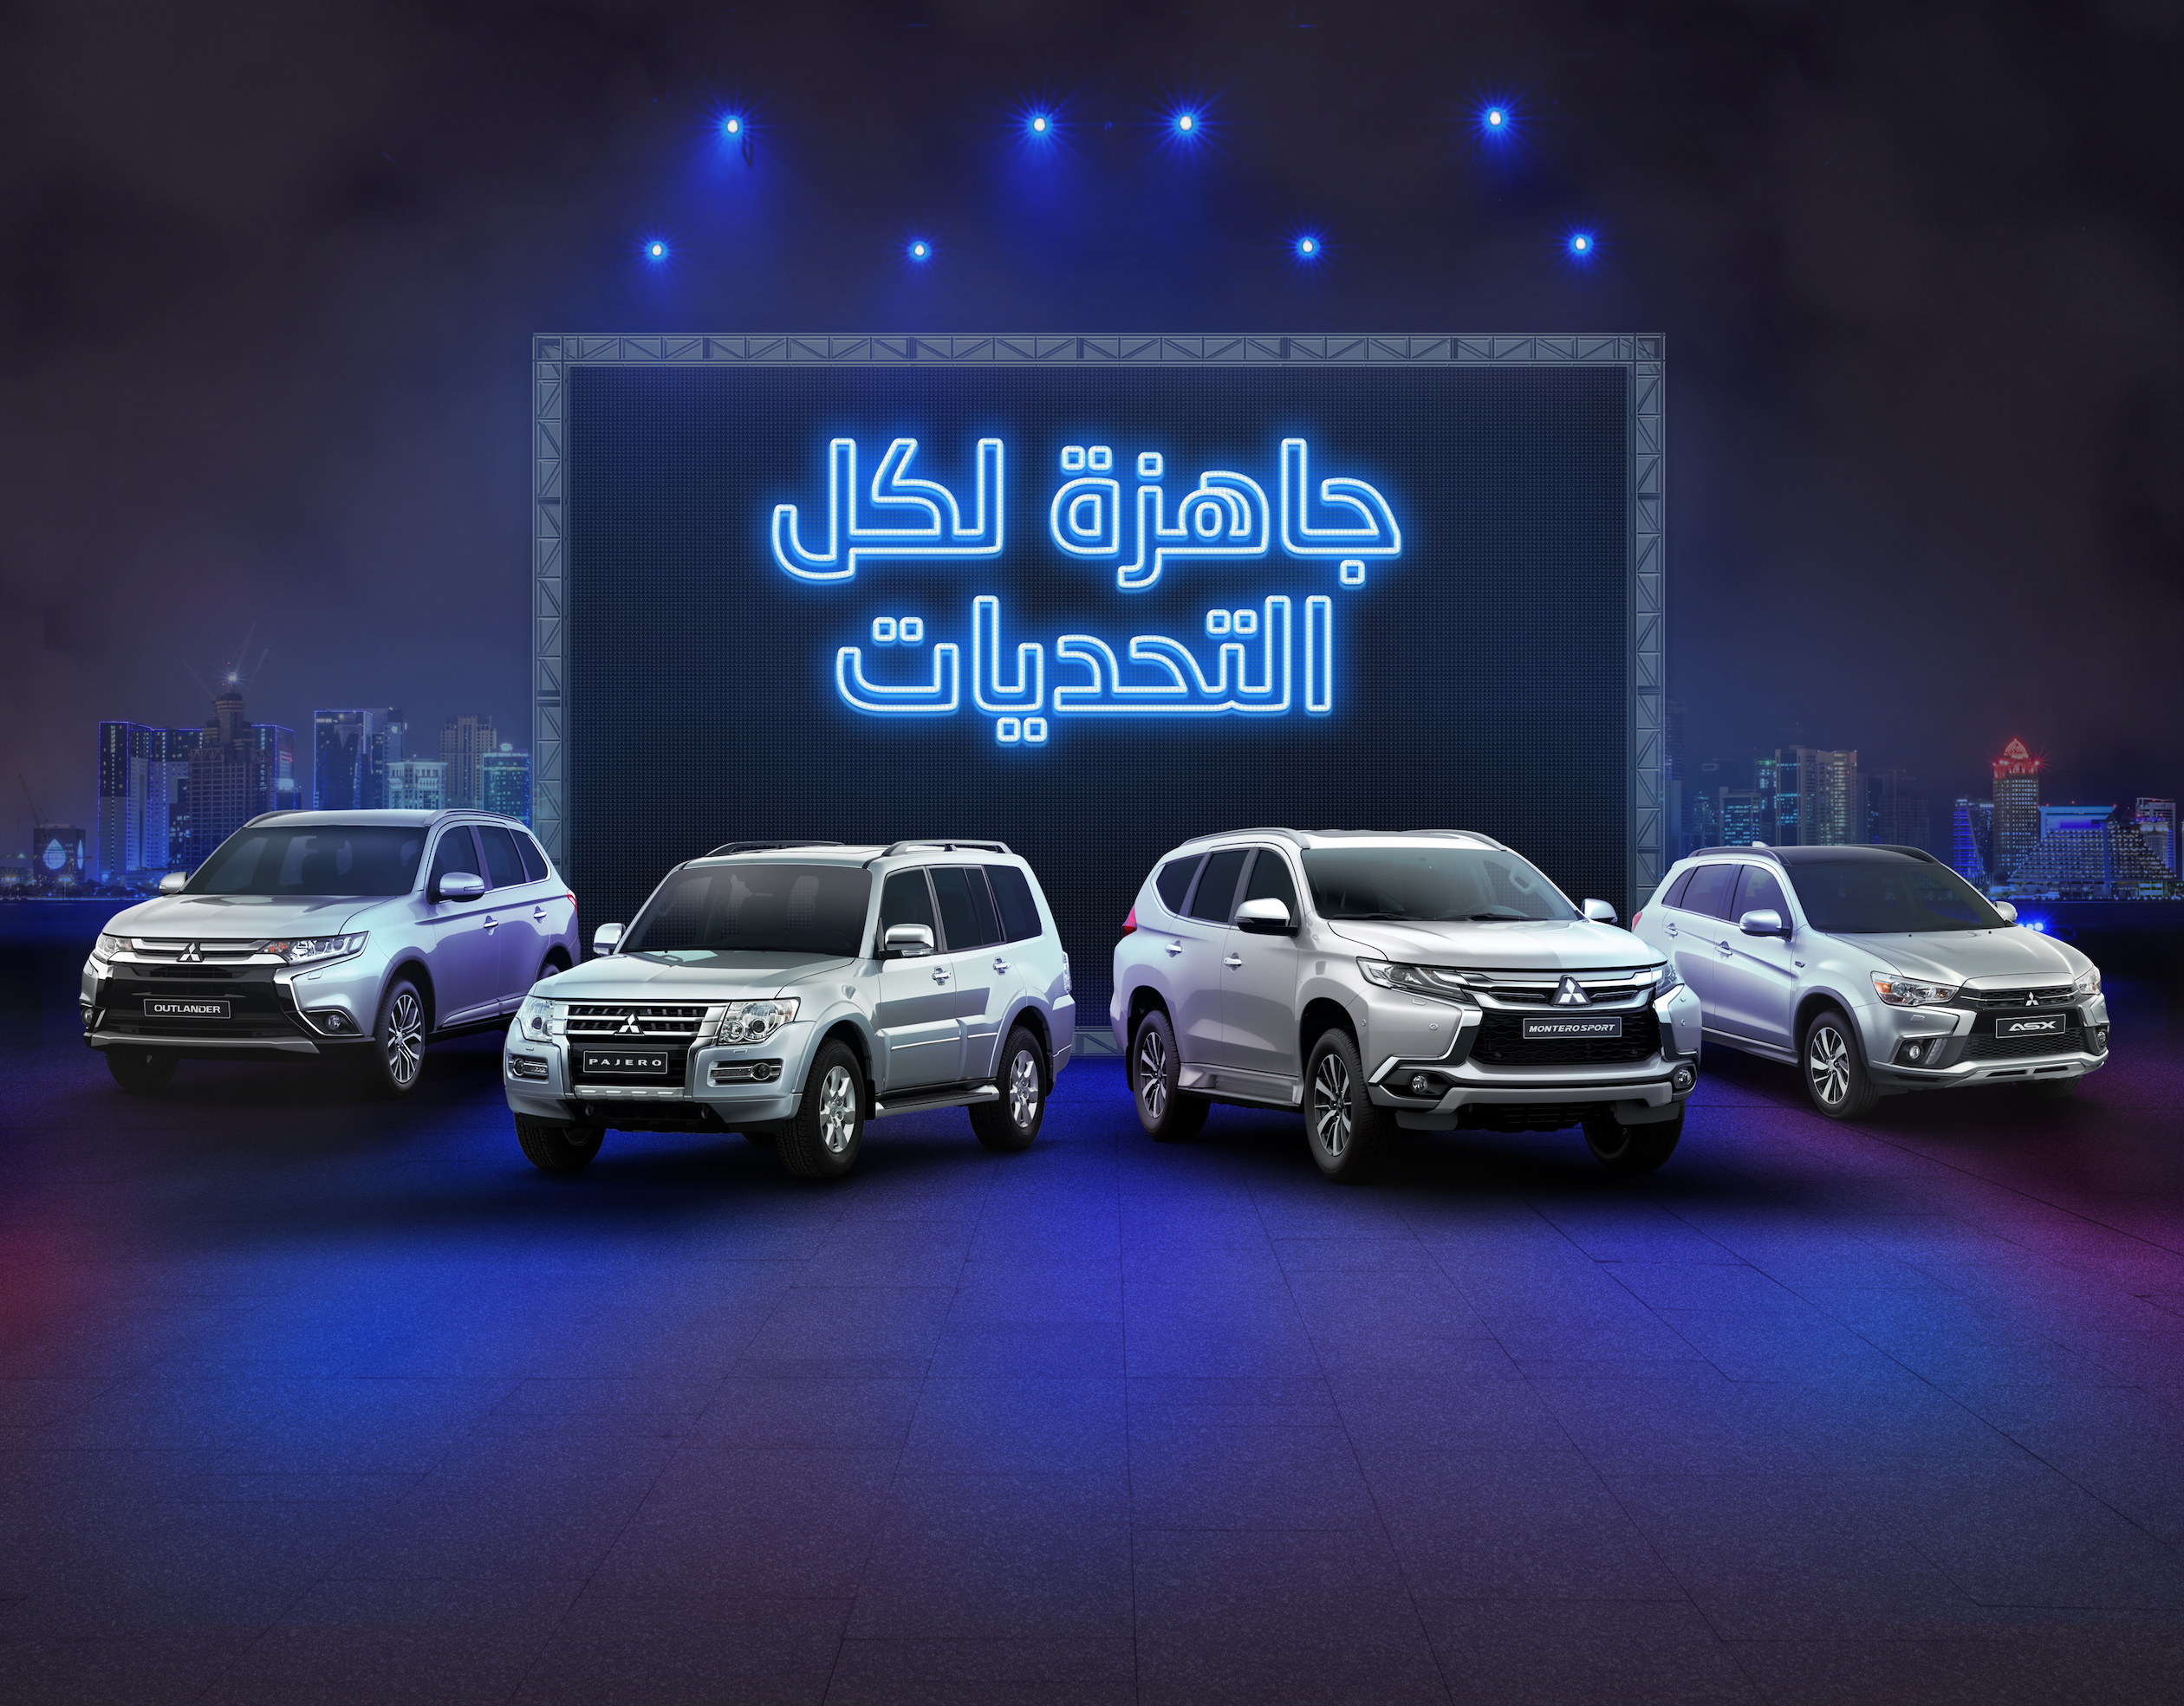 Qatar Automobiles Company Presents New Special Offer On A Wide Range Of Mitsubishi Vehicles